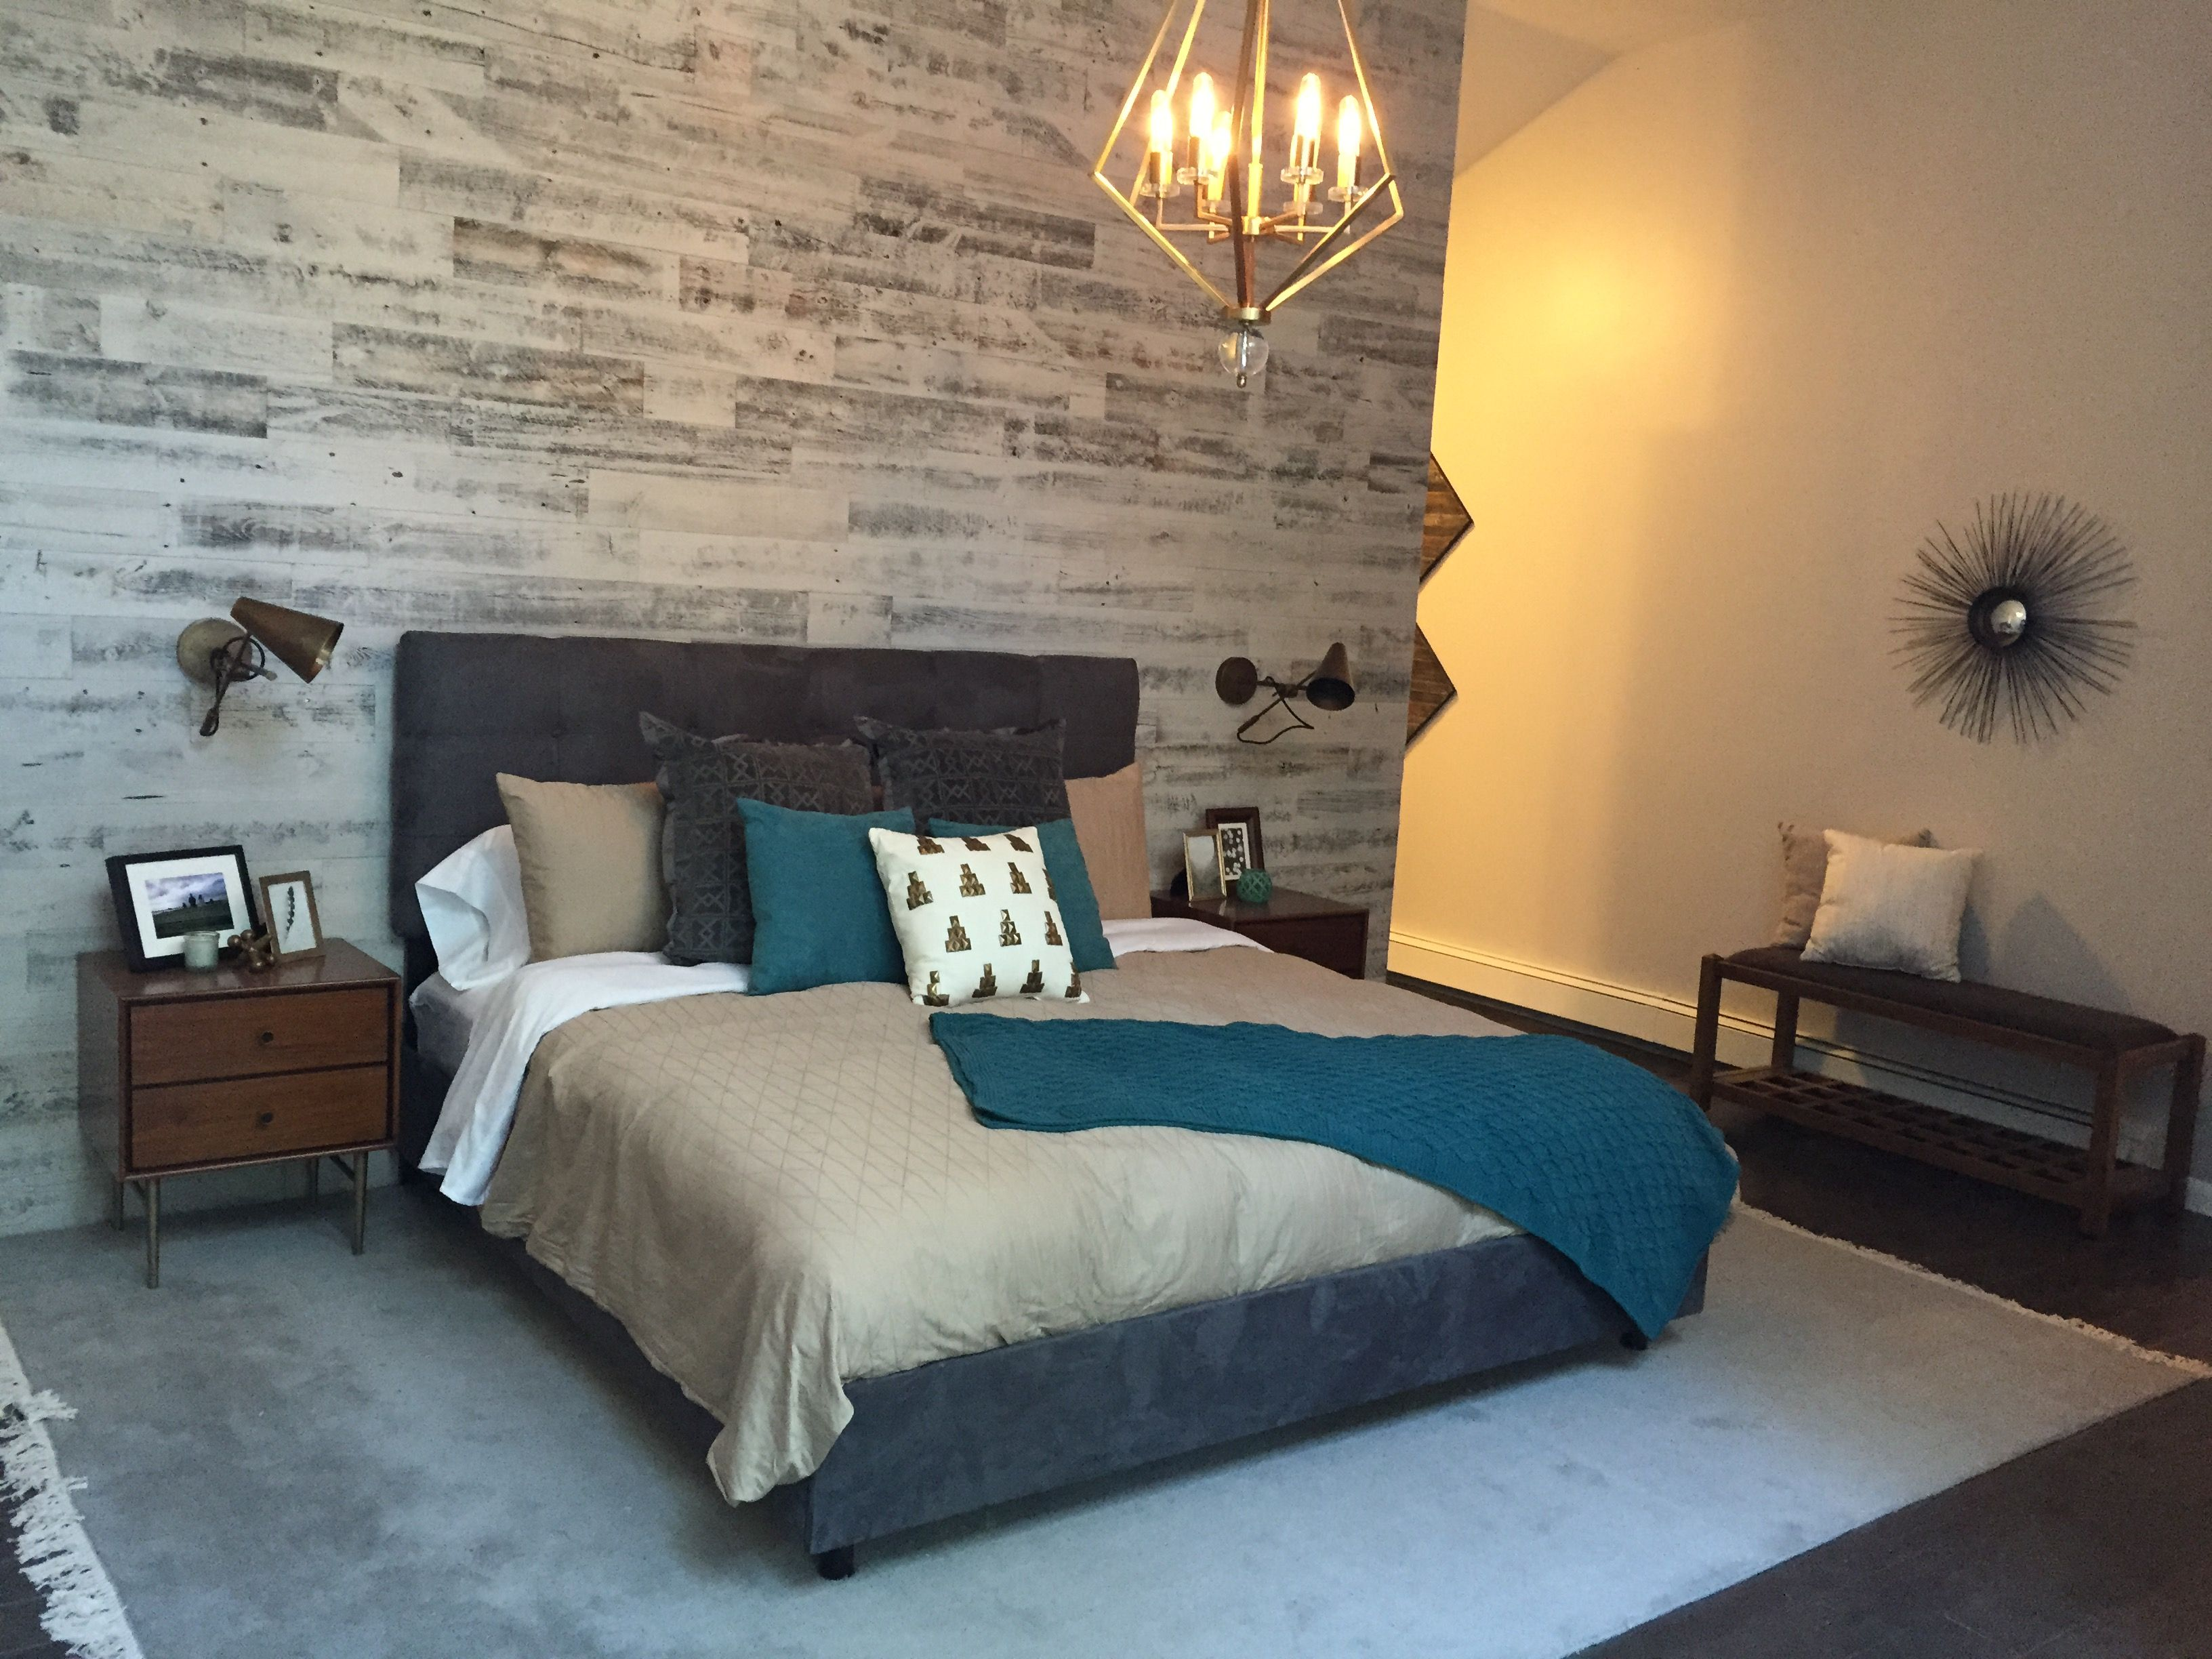 responsive headboard bedroom home designer pin interior bobby master berk stikwood wall